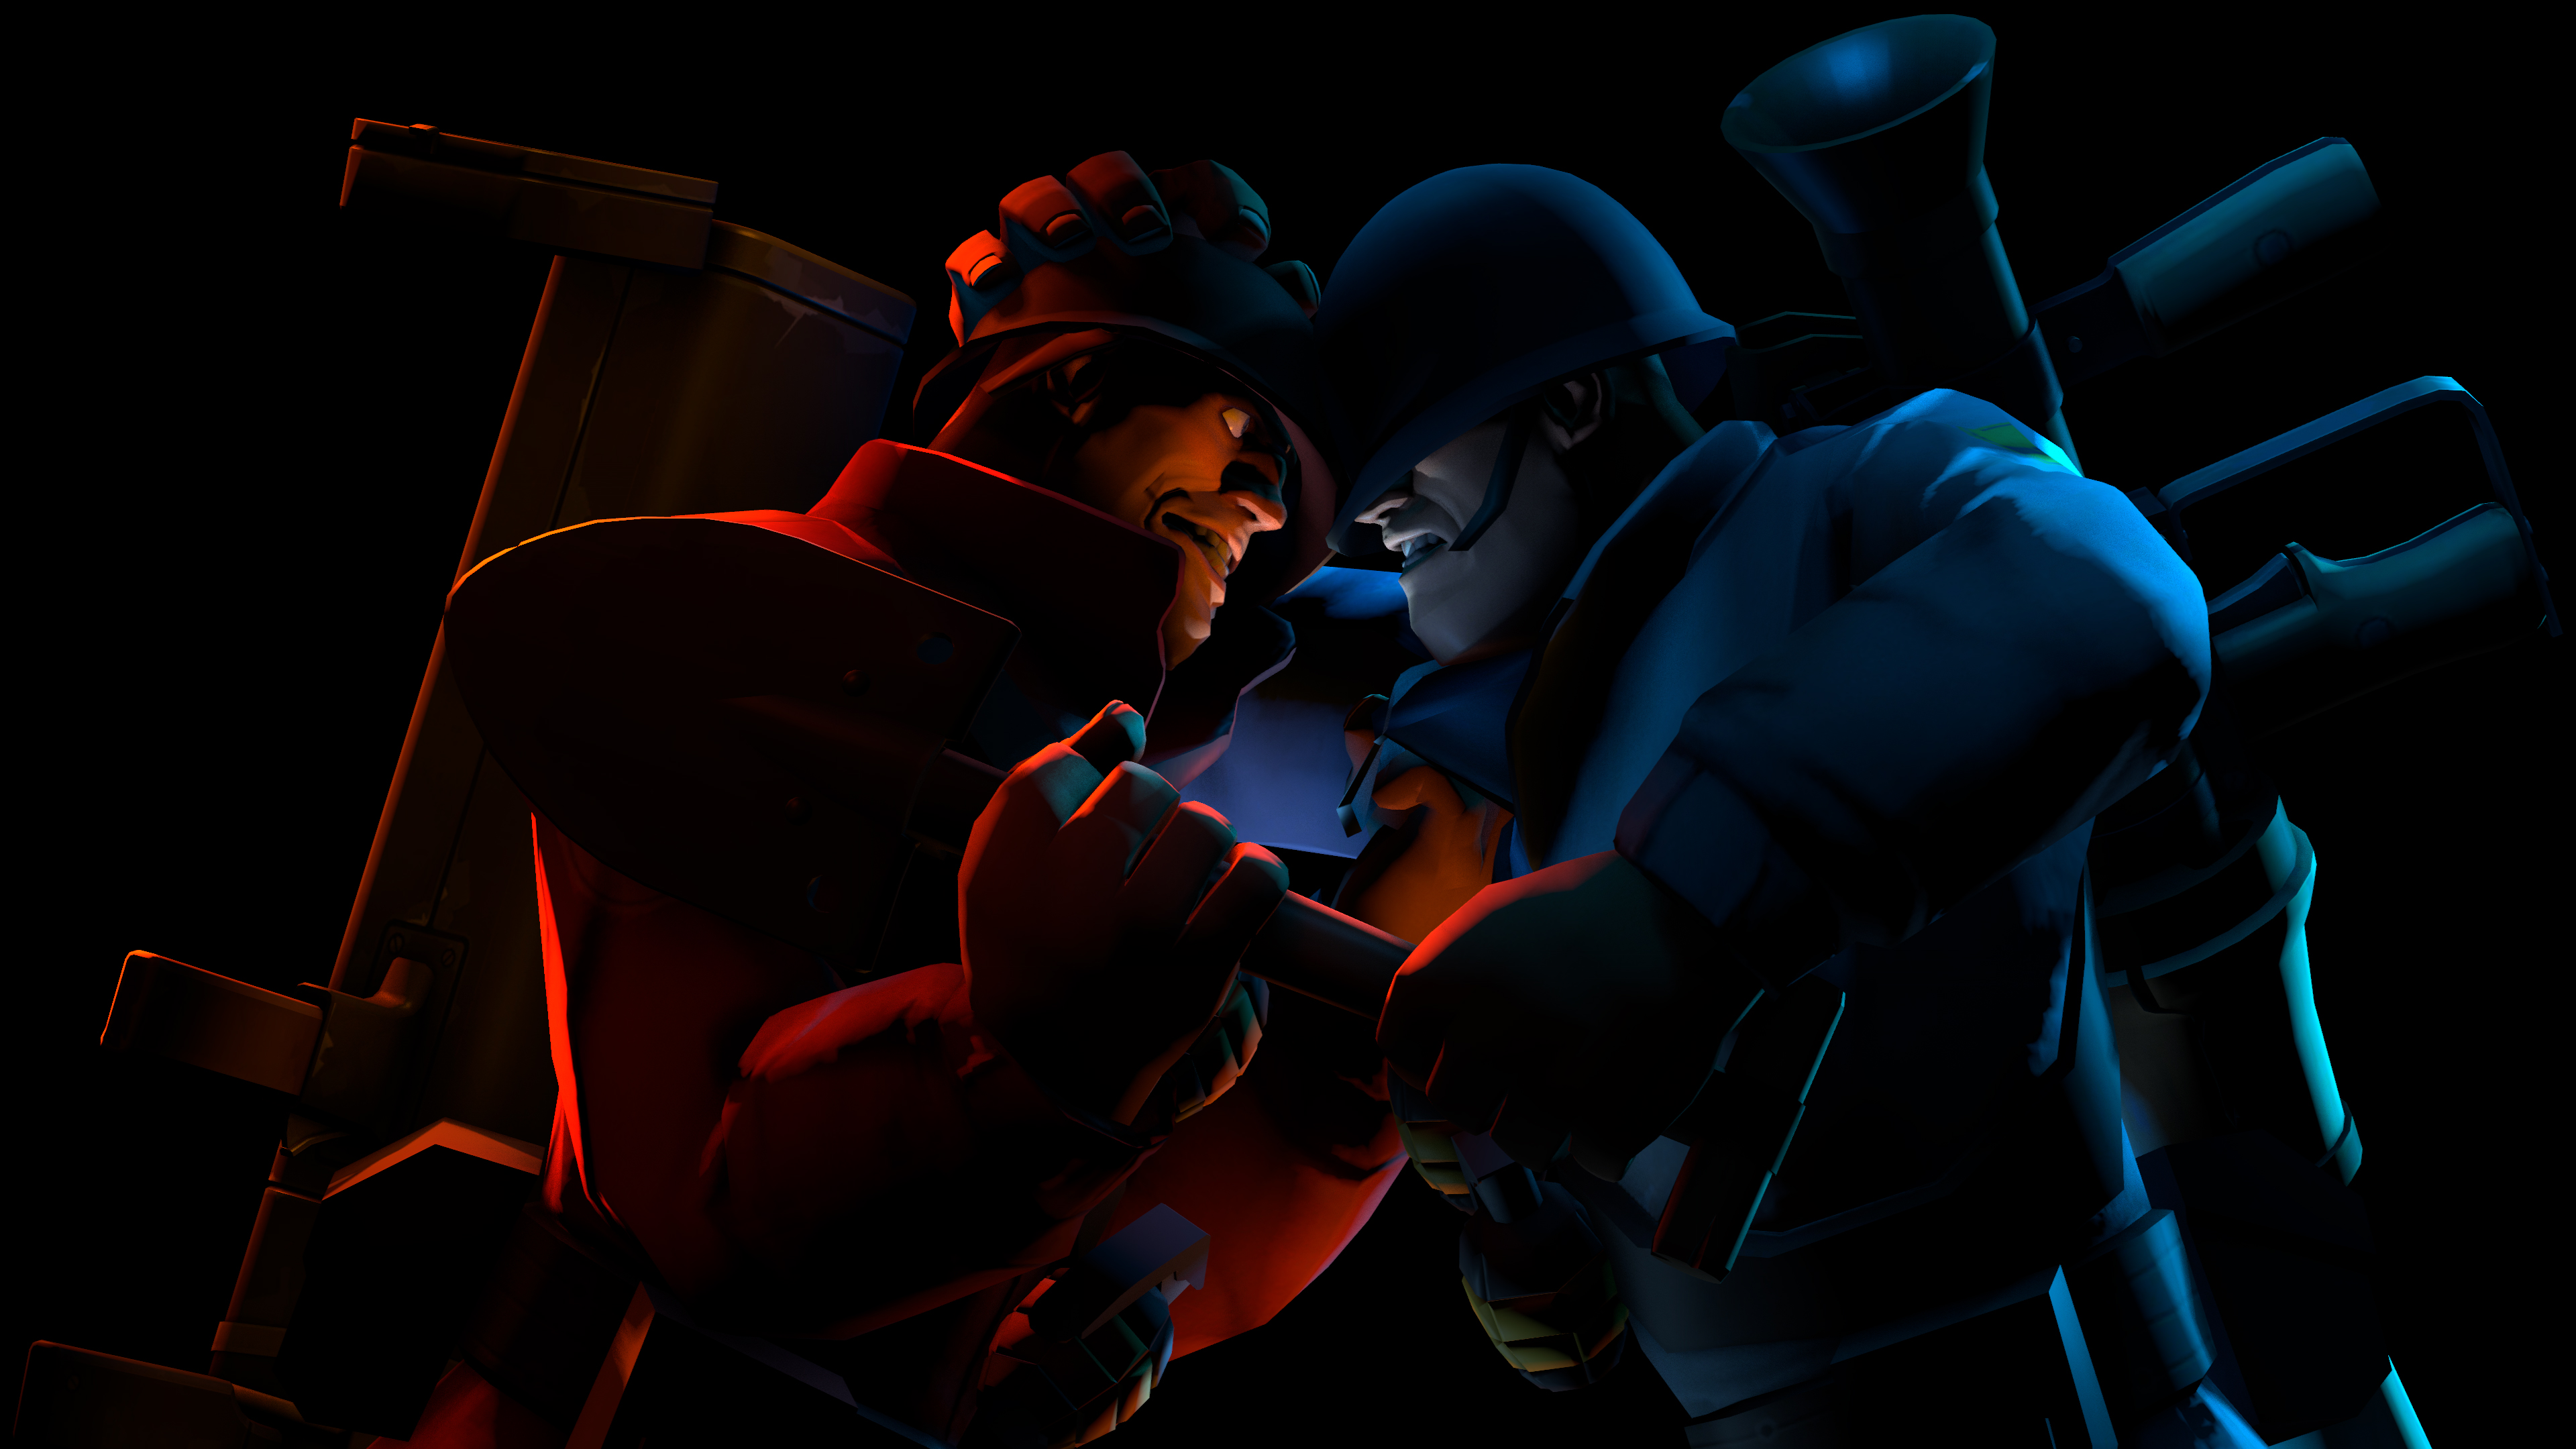 Video Game Team Fortress 2 3840x2160